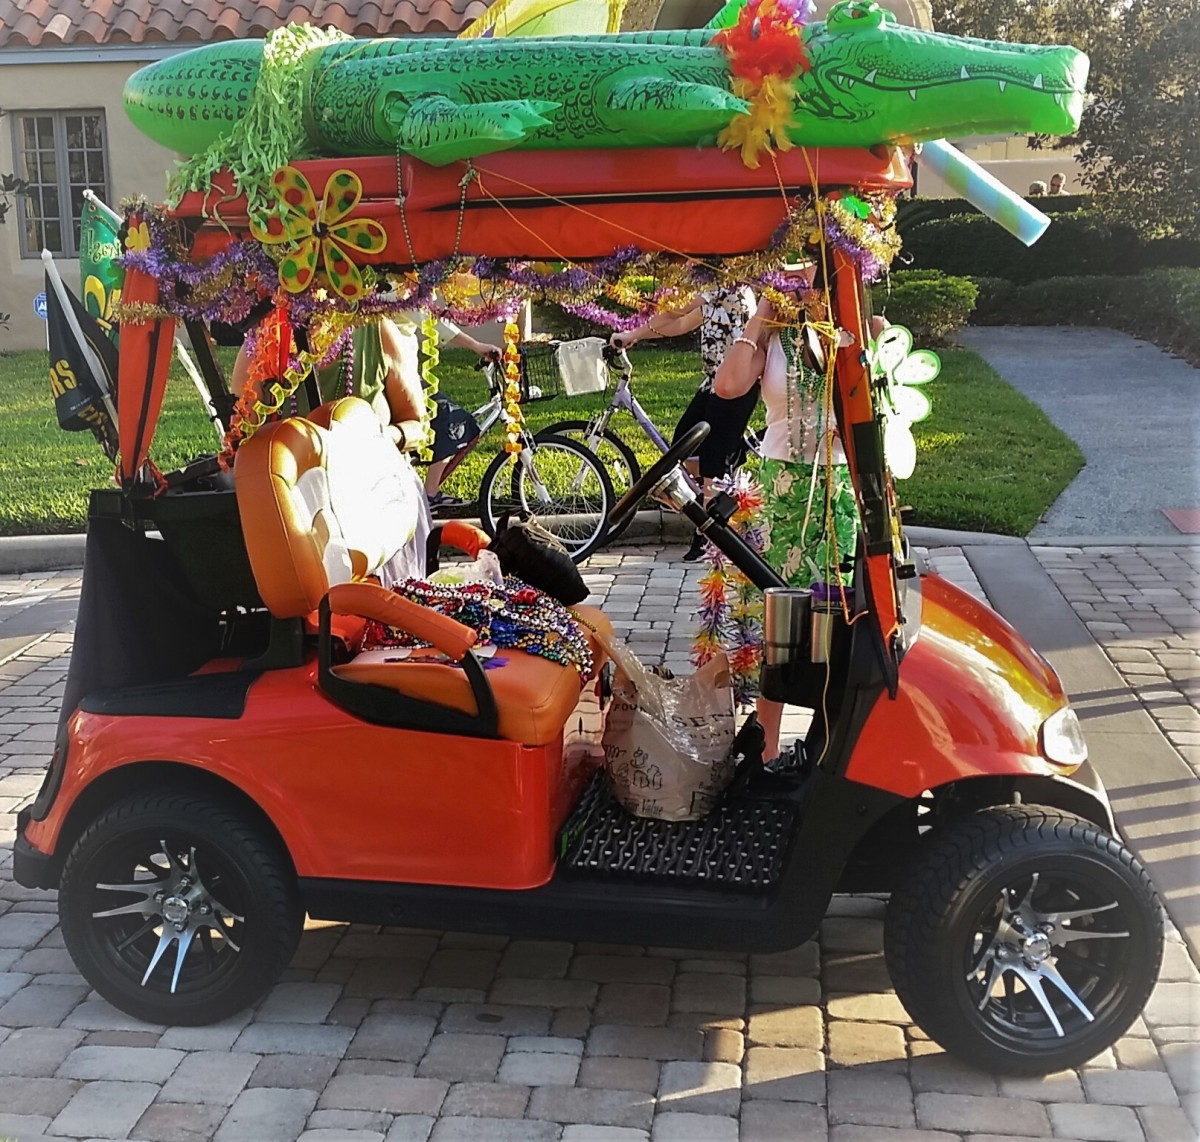 An inflated pool alligator, lots of flowers, and the passengers dressed in typical Florida tourist style -- what a fun cart!